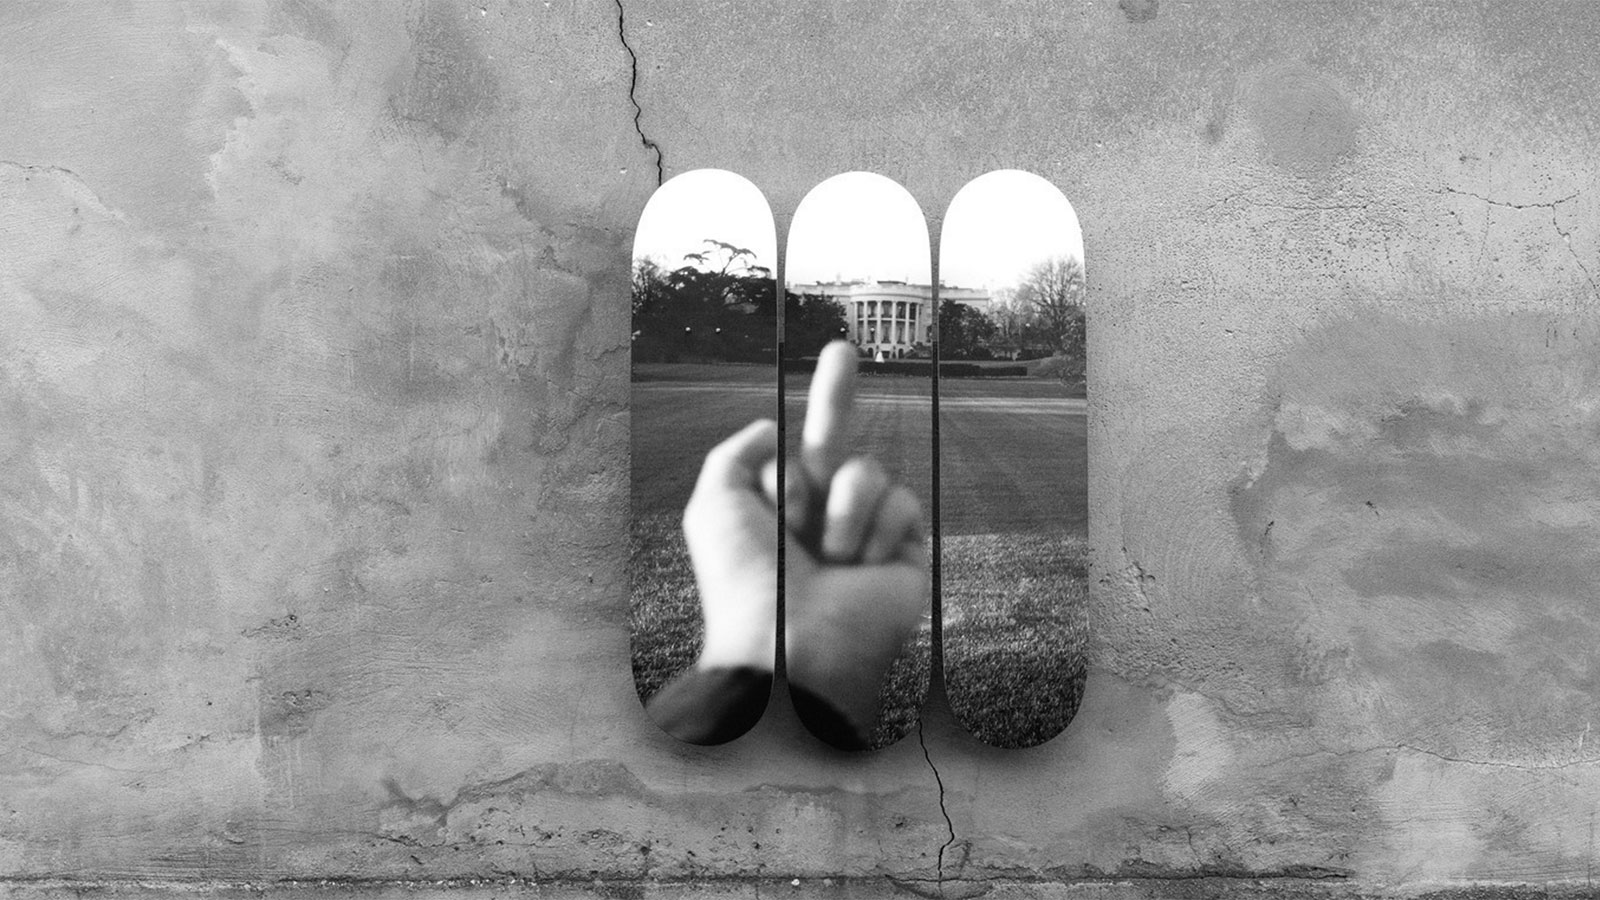 STUDY OF PERSPECTIVE - THE WHITE HOUSE 2017 SKATE DECKS